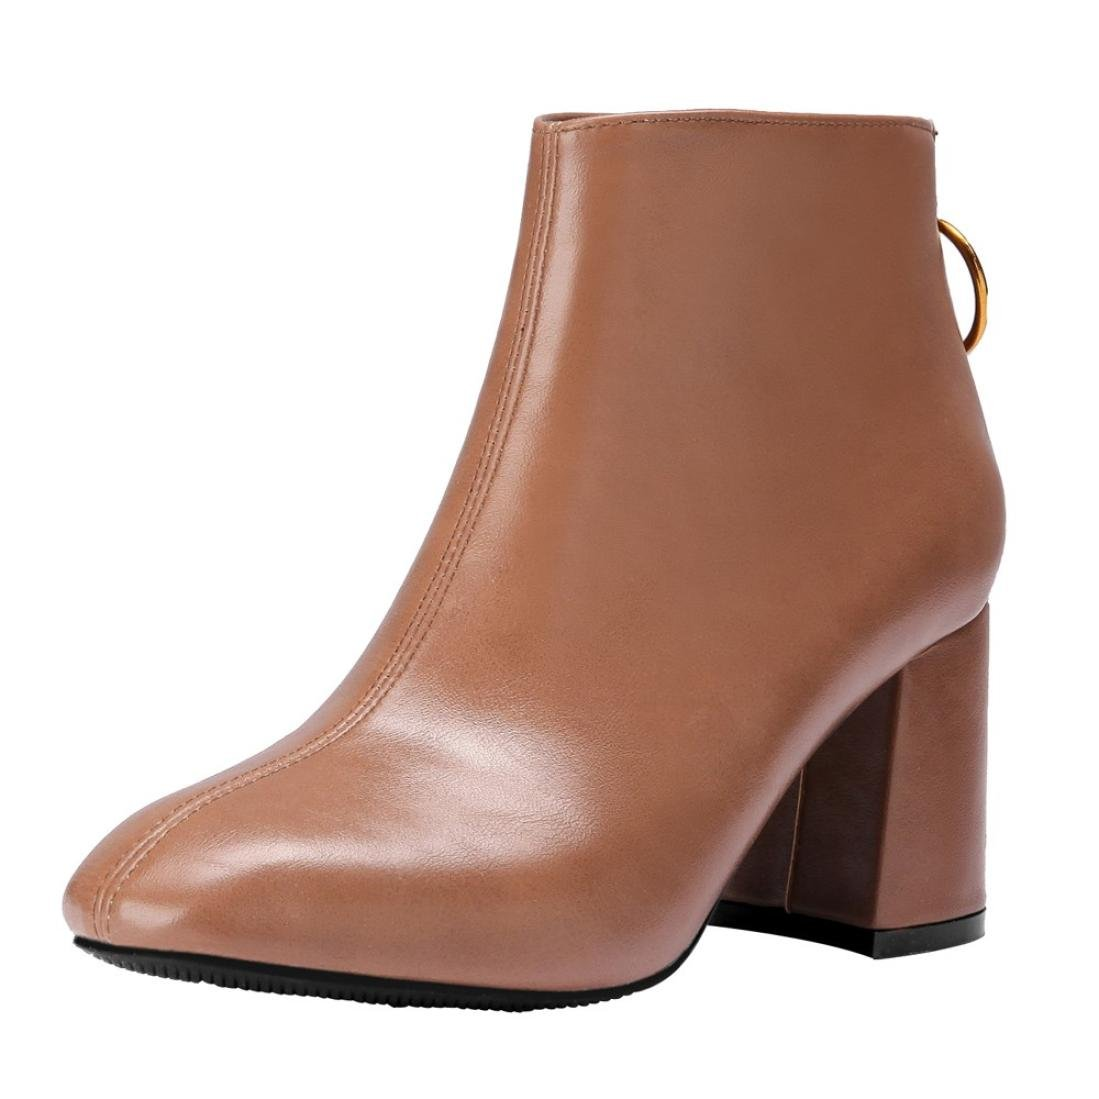 Womens Winter Boots - Chunky Heel Back Zipper Ankle Booties - Ladies Faux Lether Point Toe Snow Boots Shoes (Brown, 38/US:7)